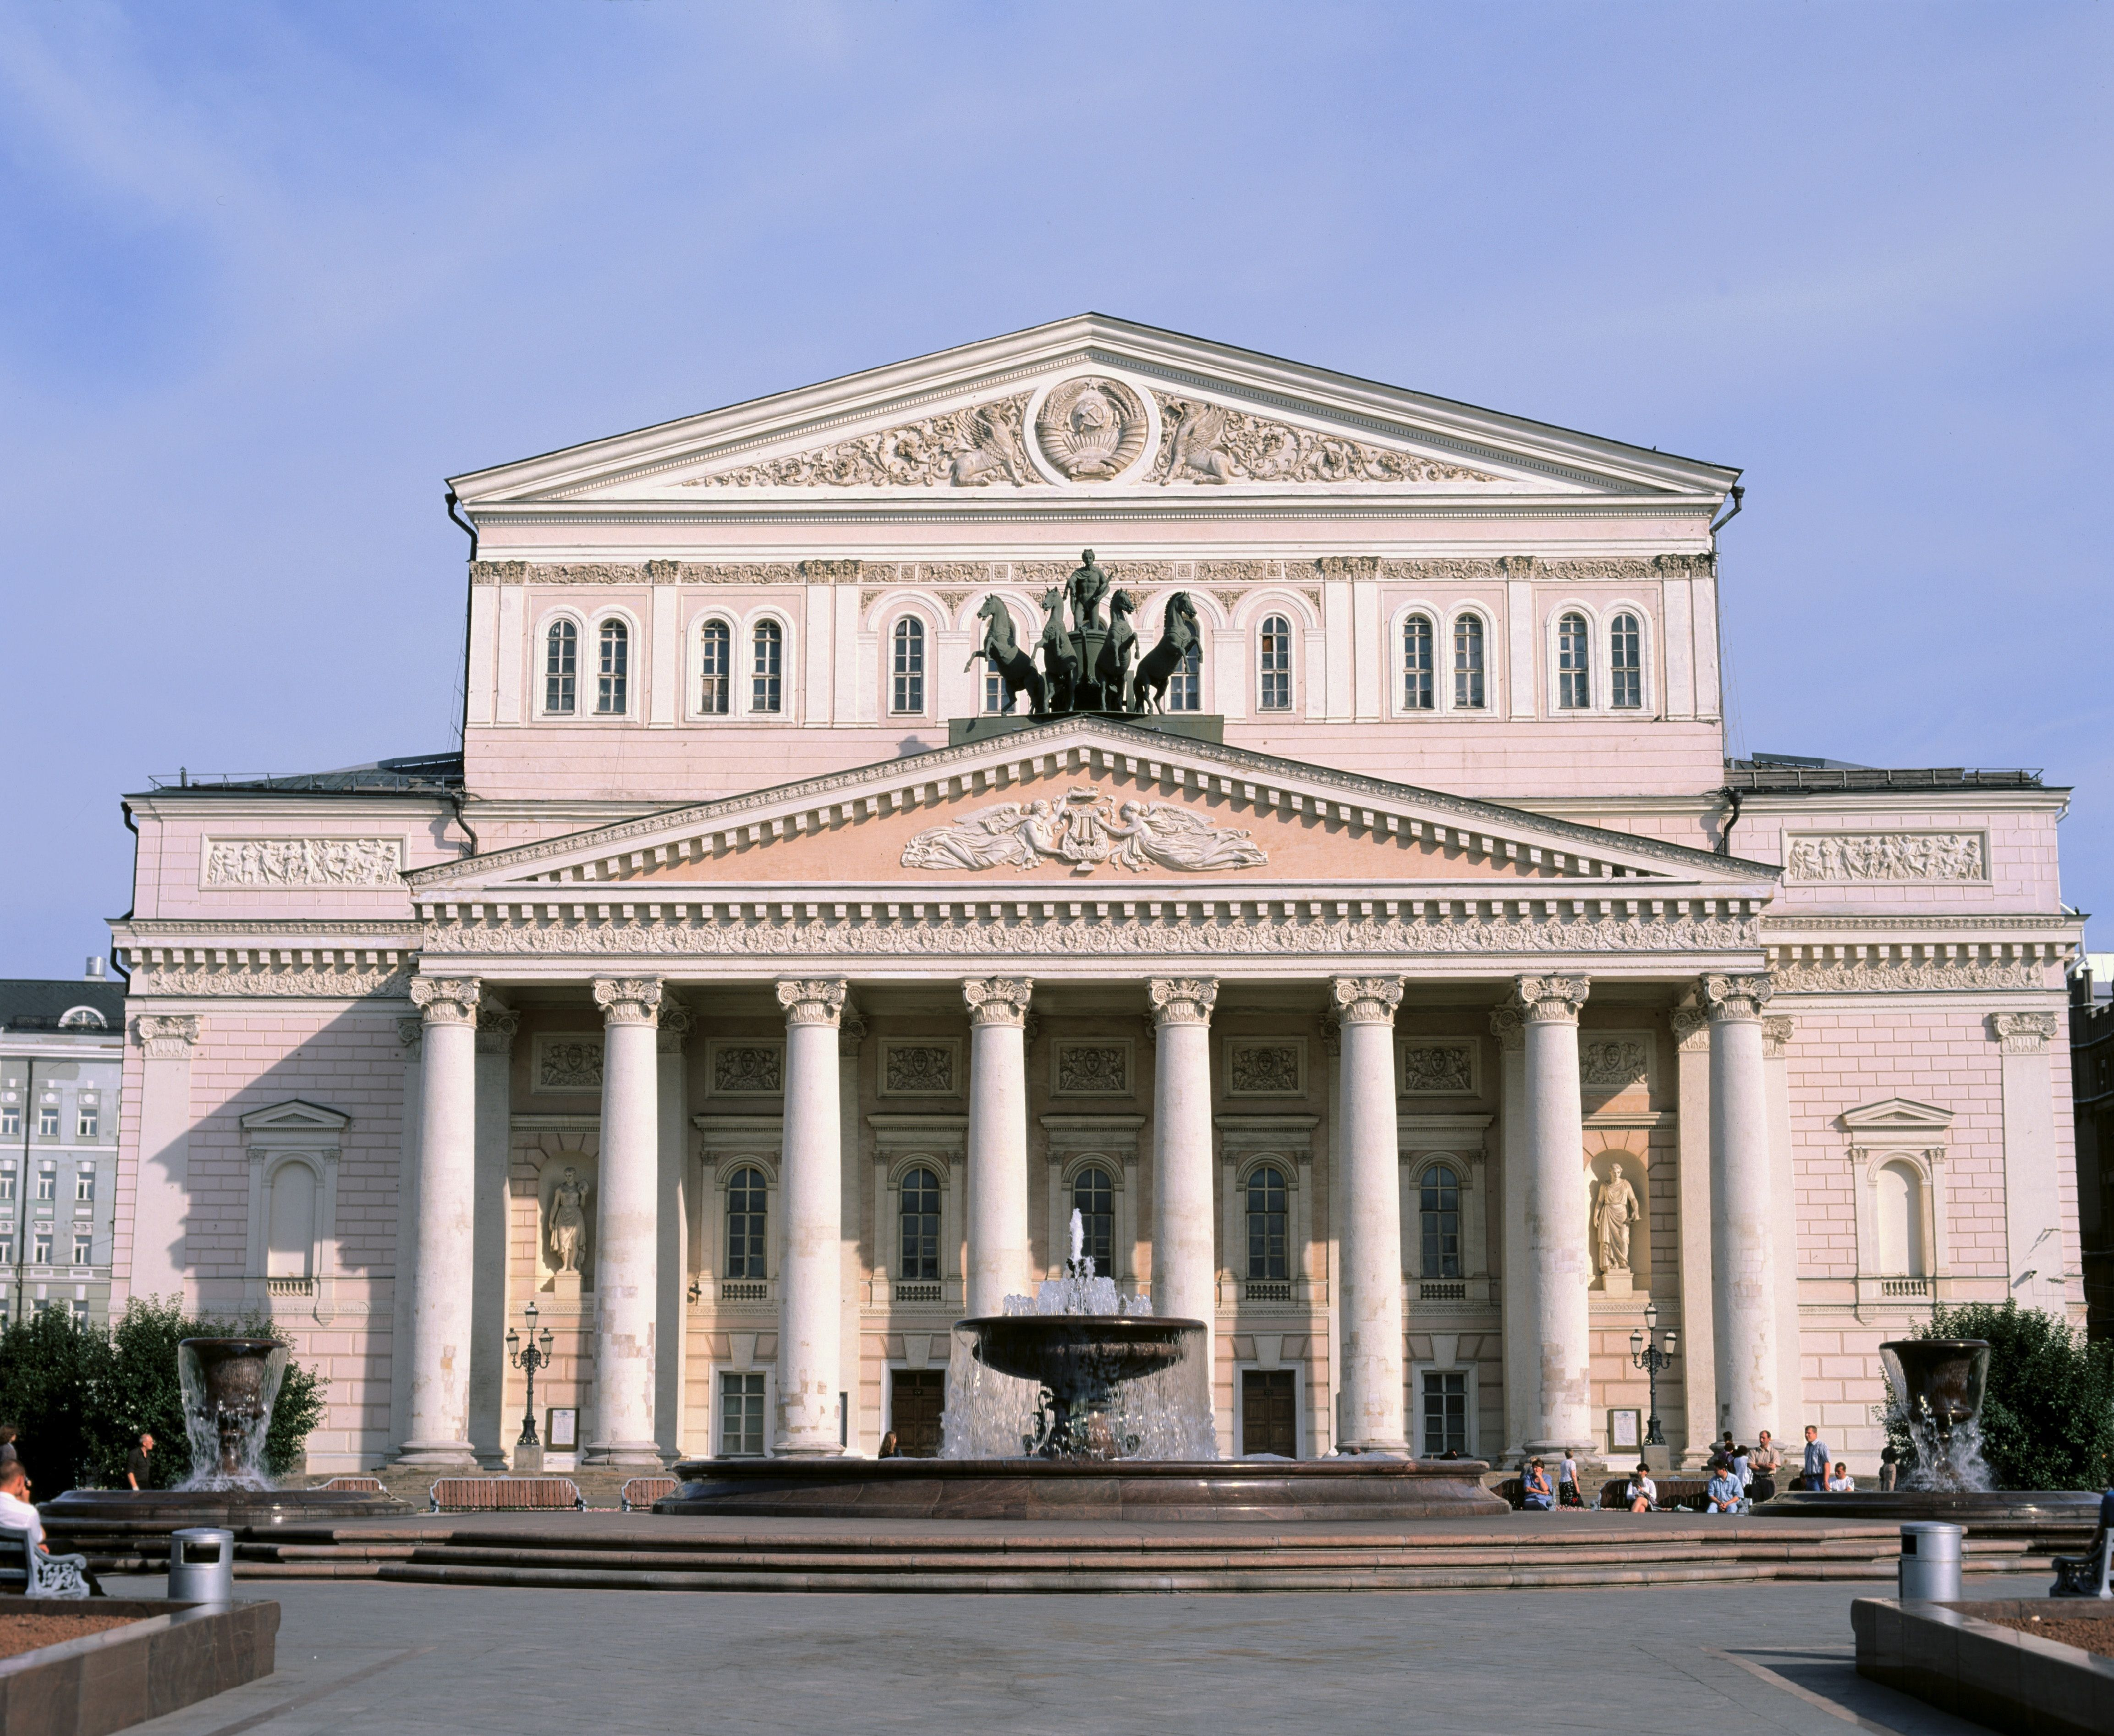 Neoclassical Bolshoi Theater in Moscow, Russia